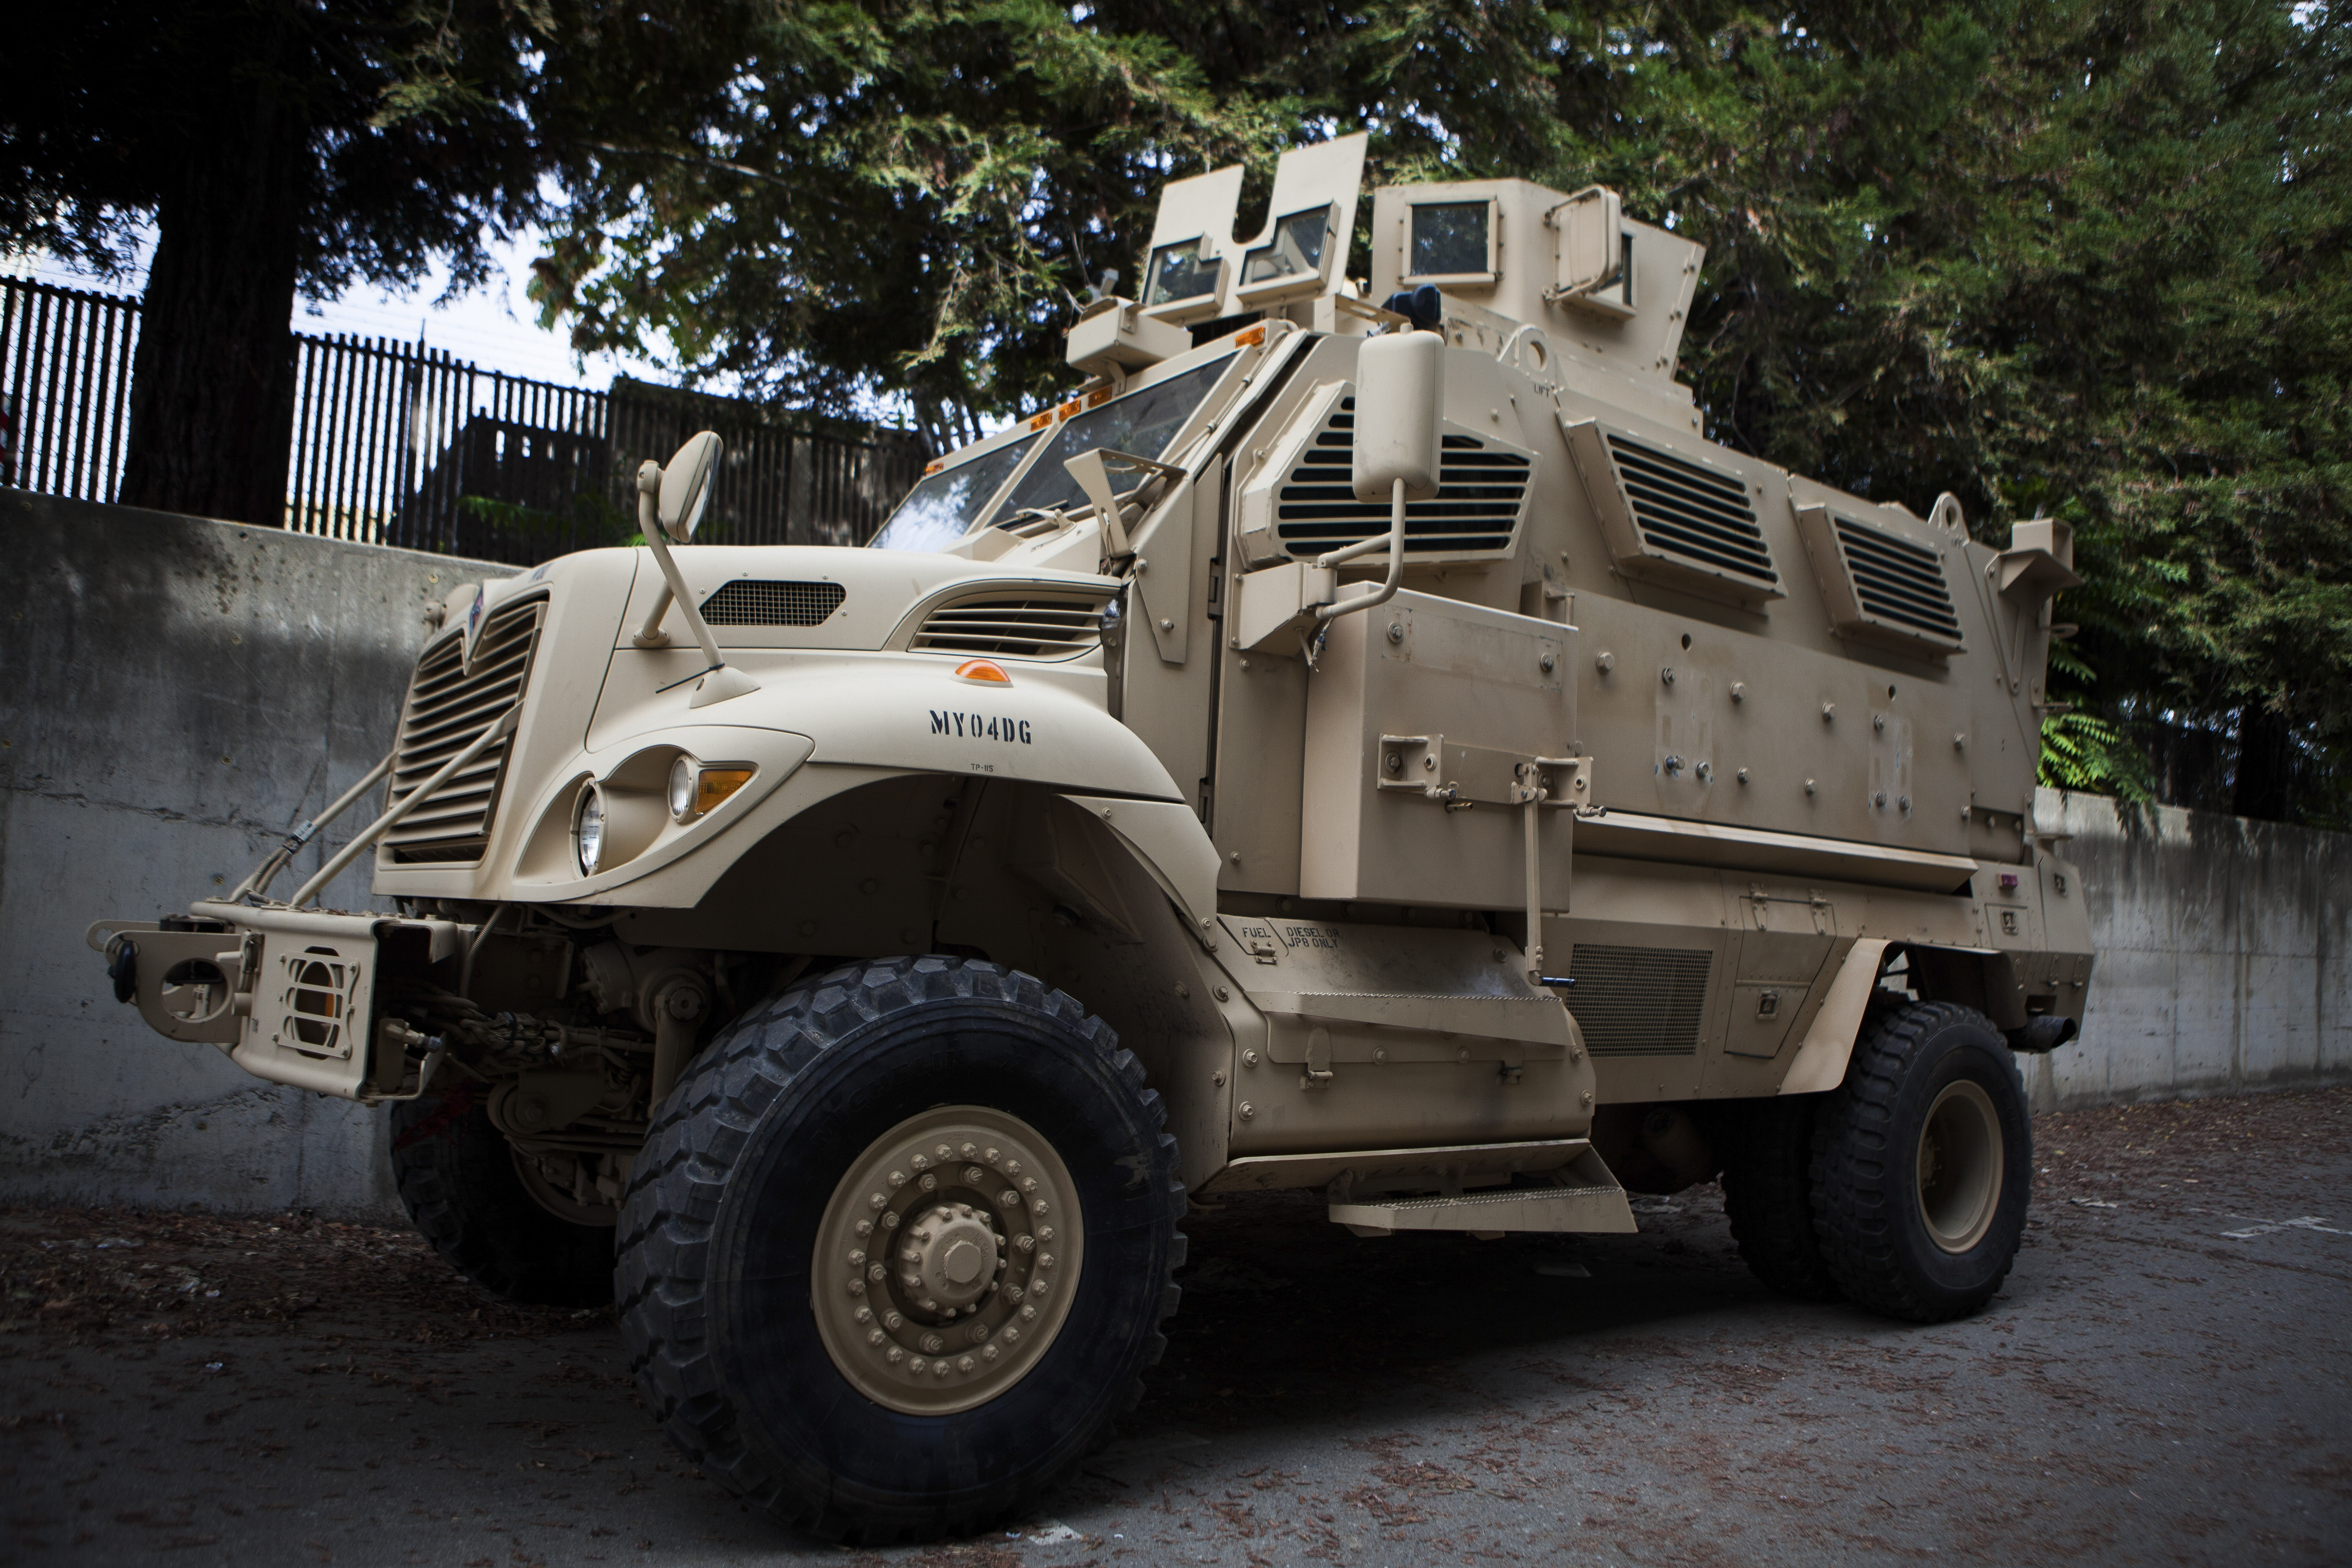 The Davis City Council decided this armored vehicle was inappropriate for policing in the California city and voted last year to return it to the military. (New York Times)